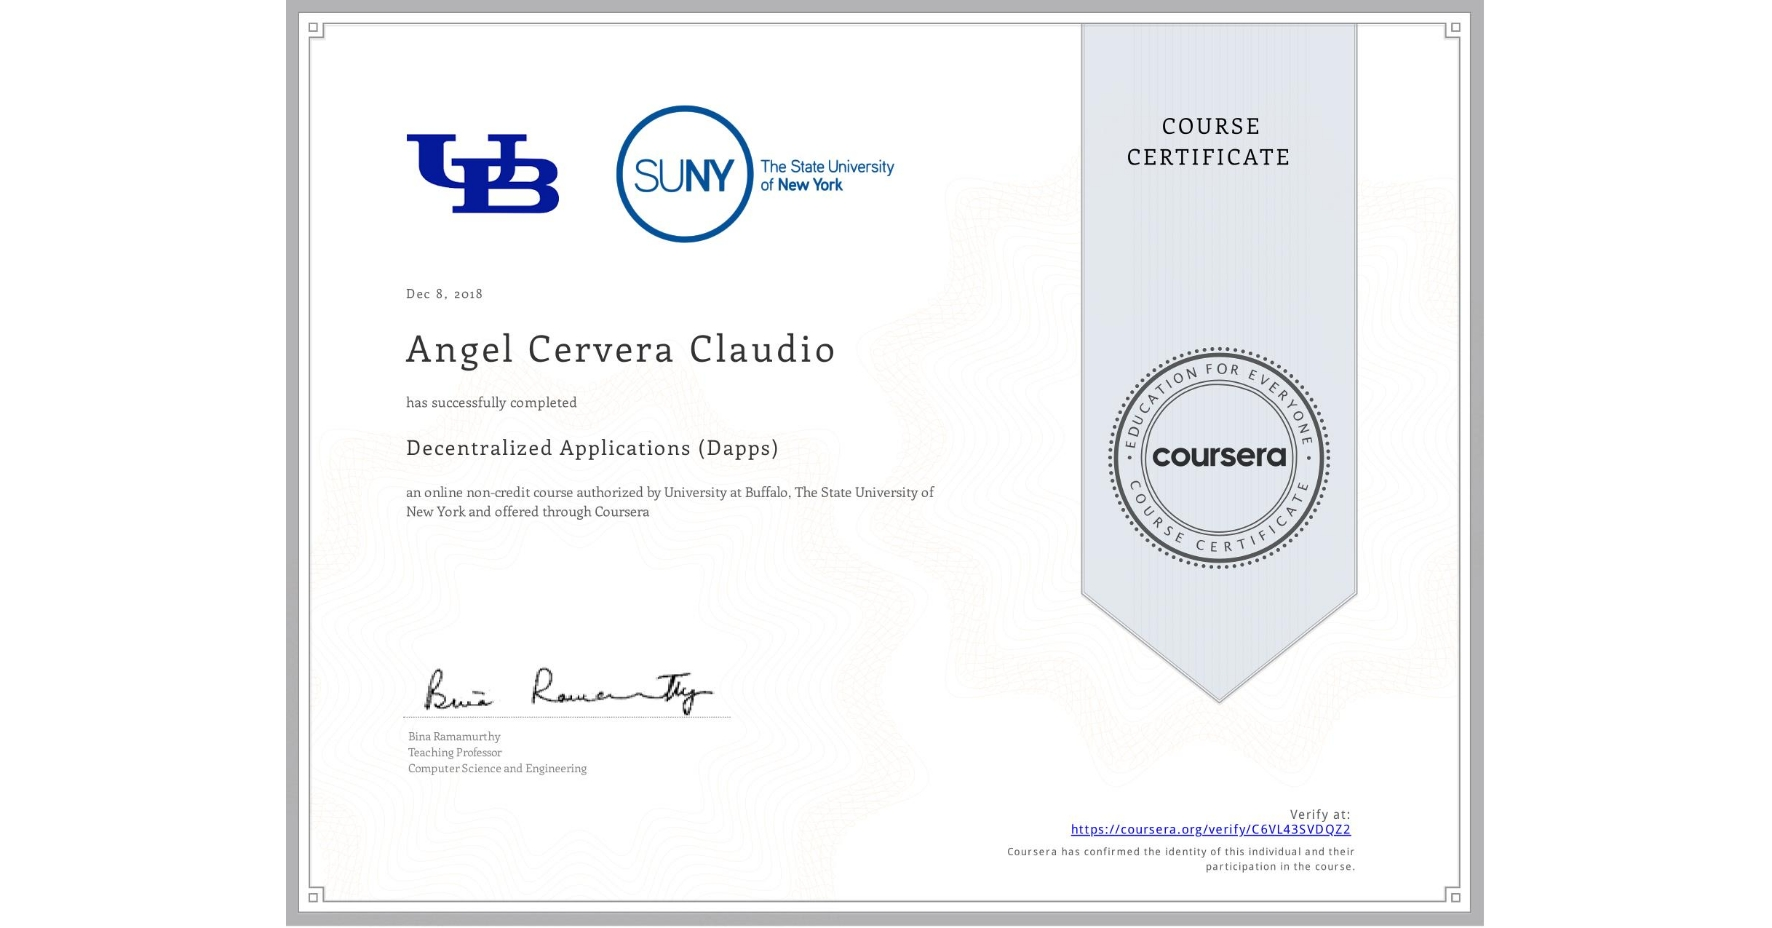 View certificate for Angel Cervera Claudio, Decentralized Applications (Dapps), an online non-credit course authorized by University at Buffalo & The State University of New York and offered through Coursera